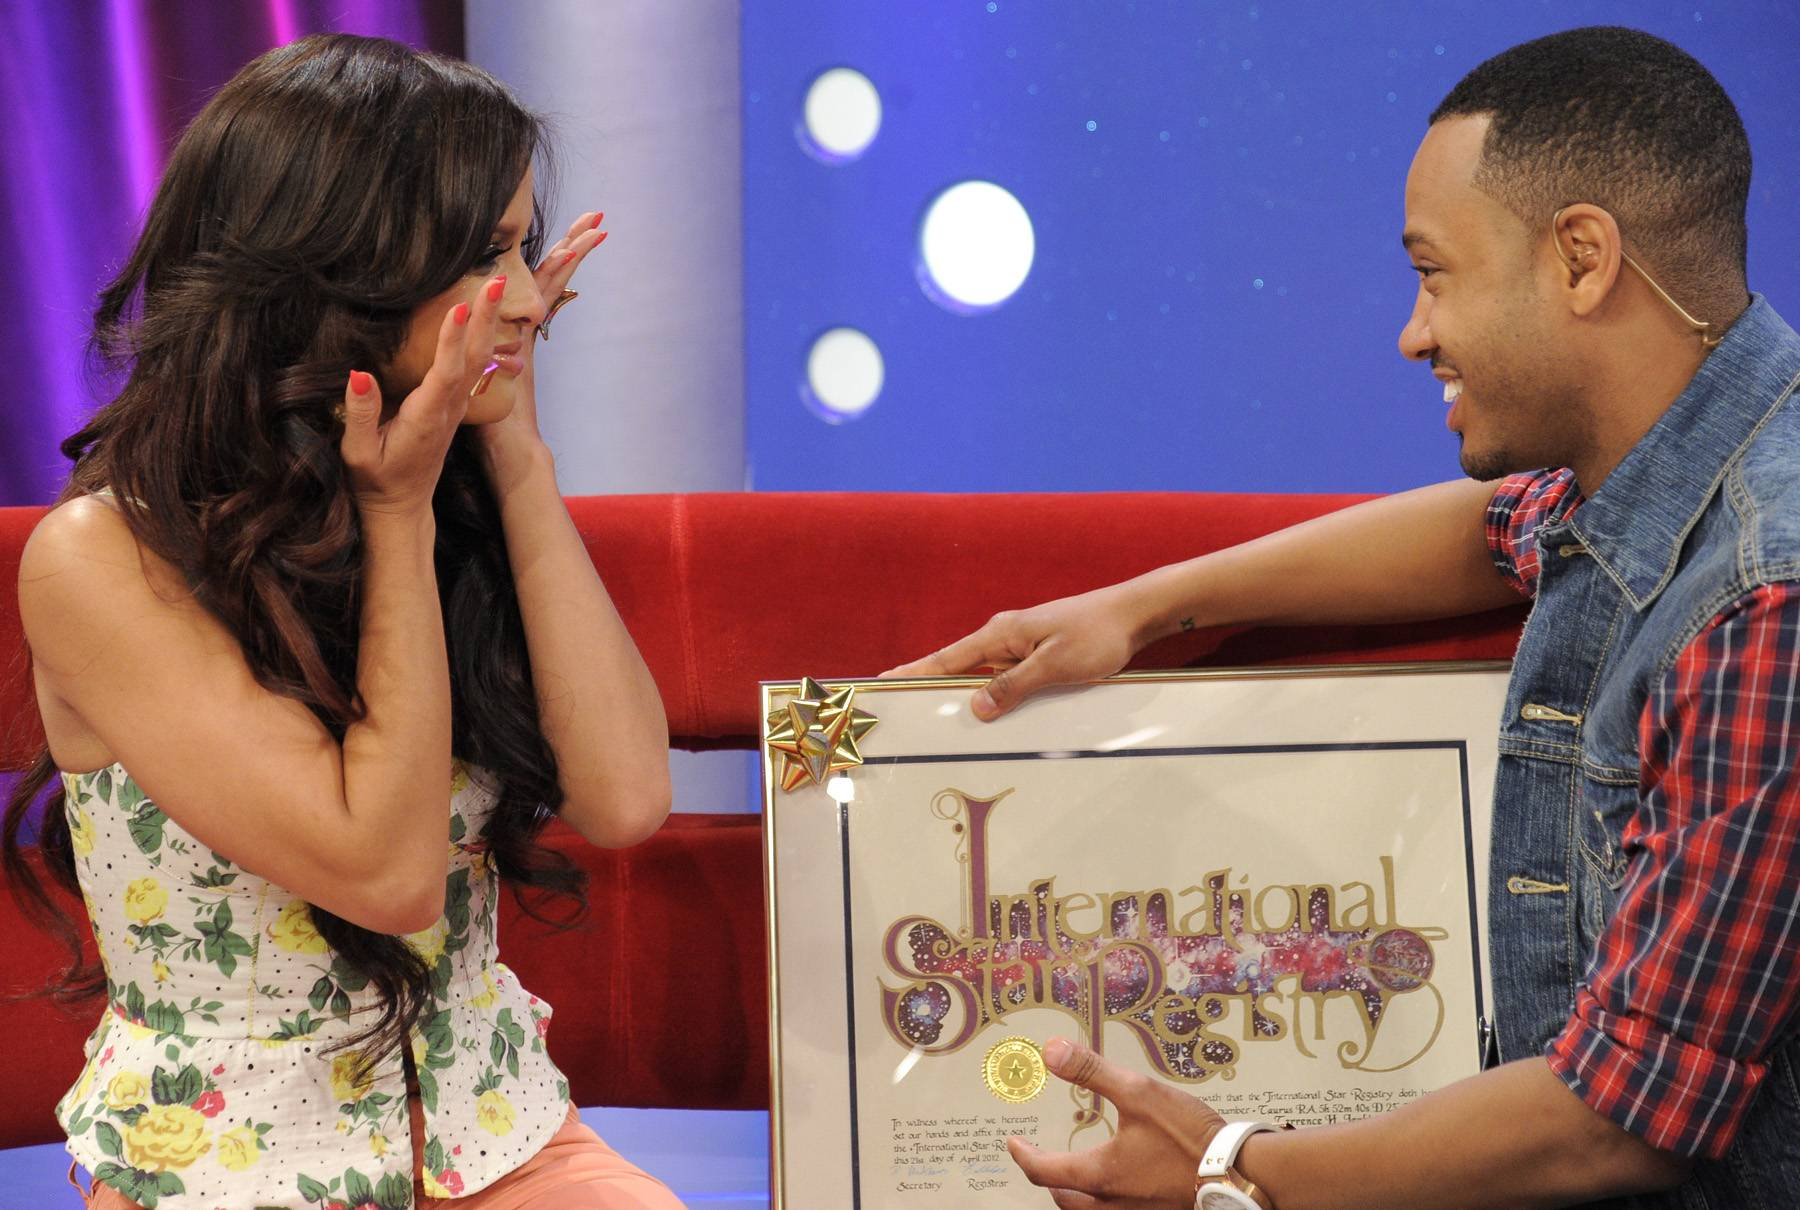 Don't Know What to Say - Rocsi Diaz breaks down as she presents Terrence J with a plaque stating that a star has been named after him because he is a rising star at 106 & Park, April 20, 2012. (Photo: John Ricard / BET)